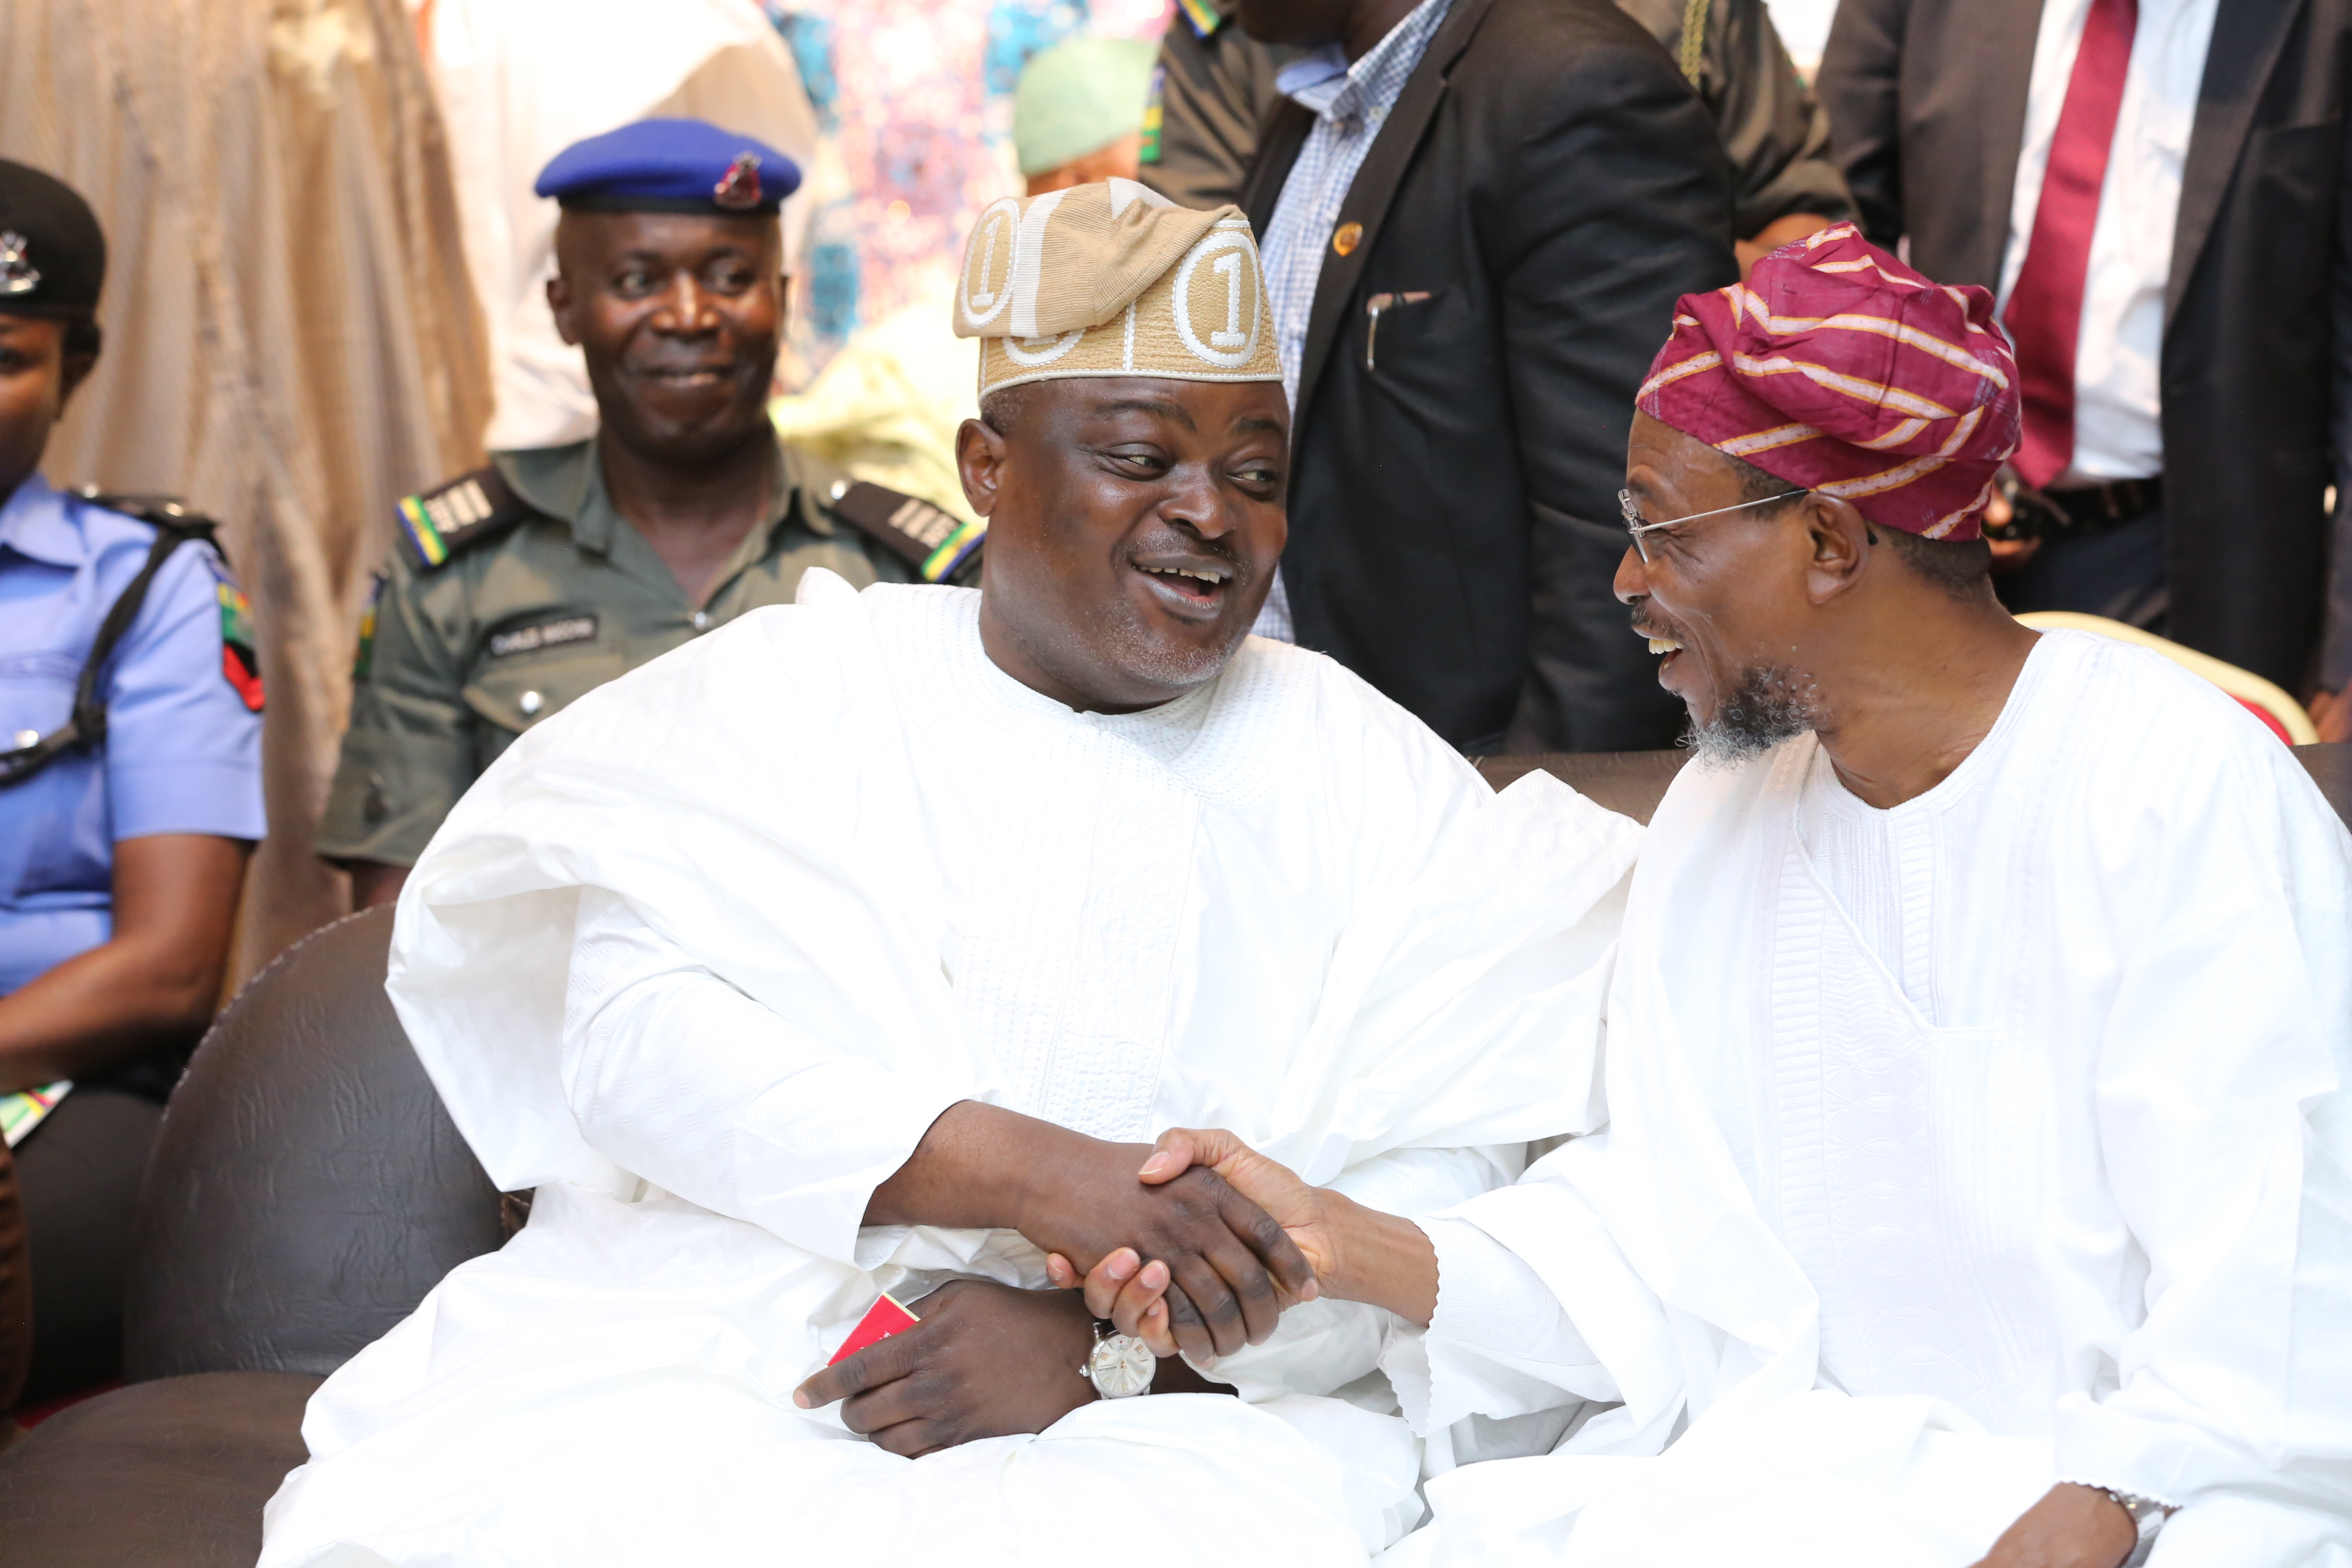 Aregbesola obasa isola others speak on why yoruba language 7a4a1240 kristyandbryce Gallery